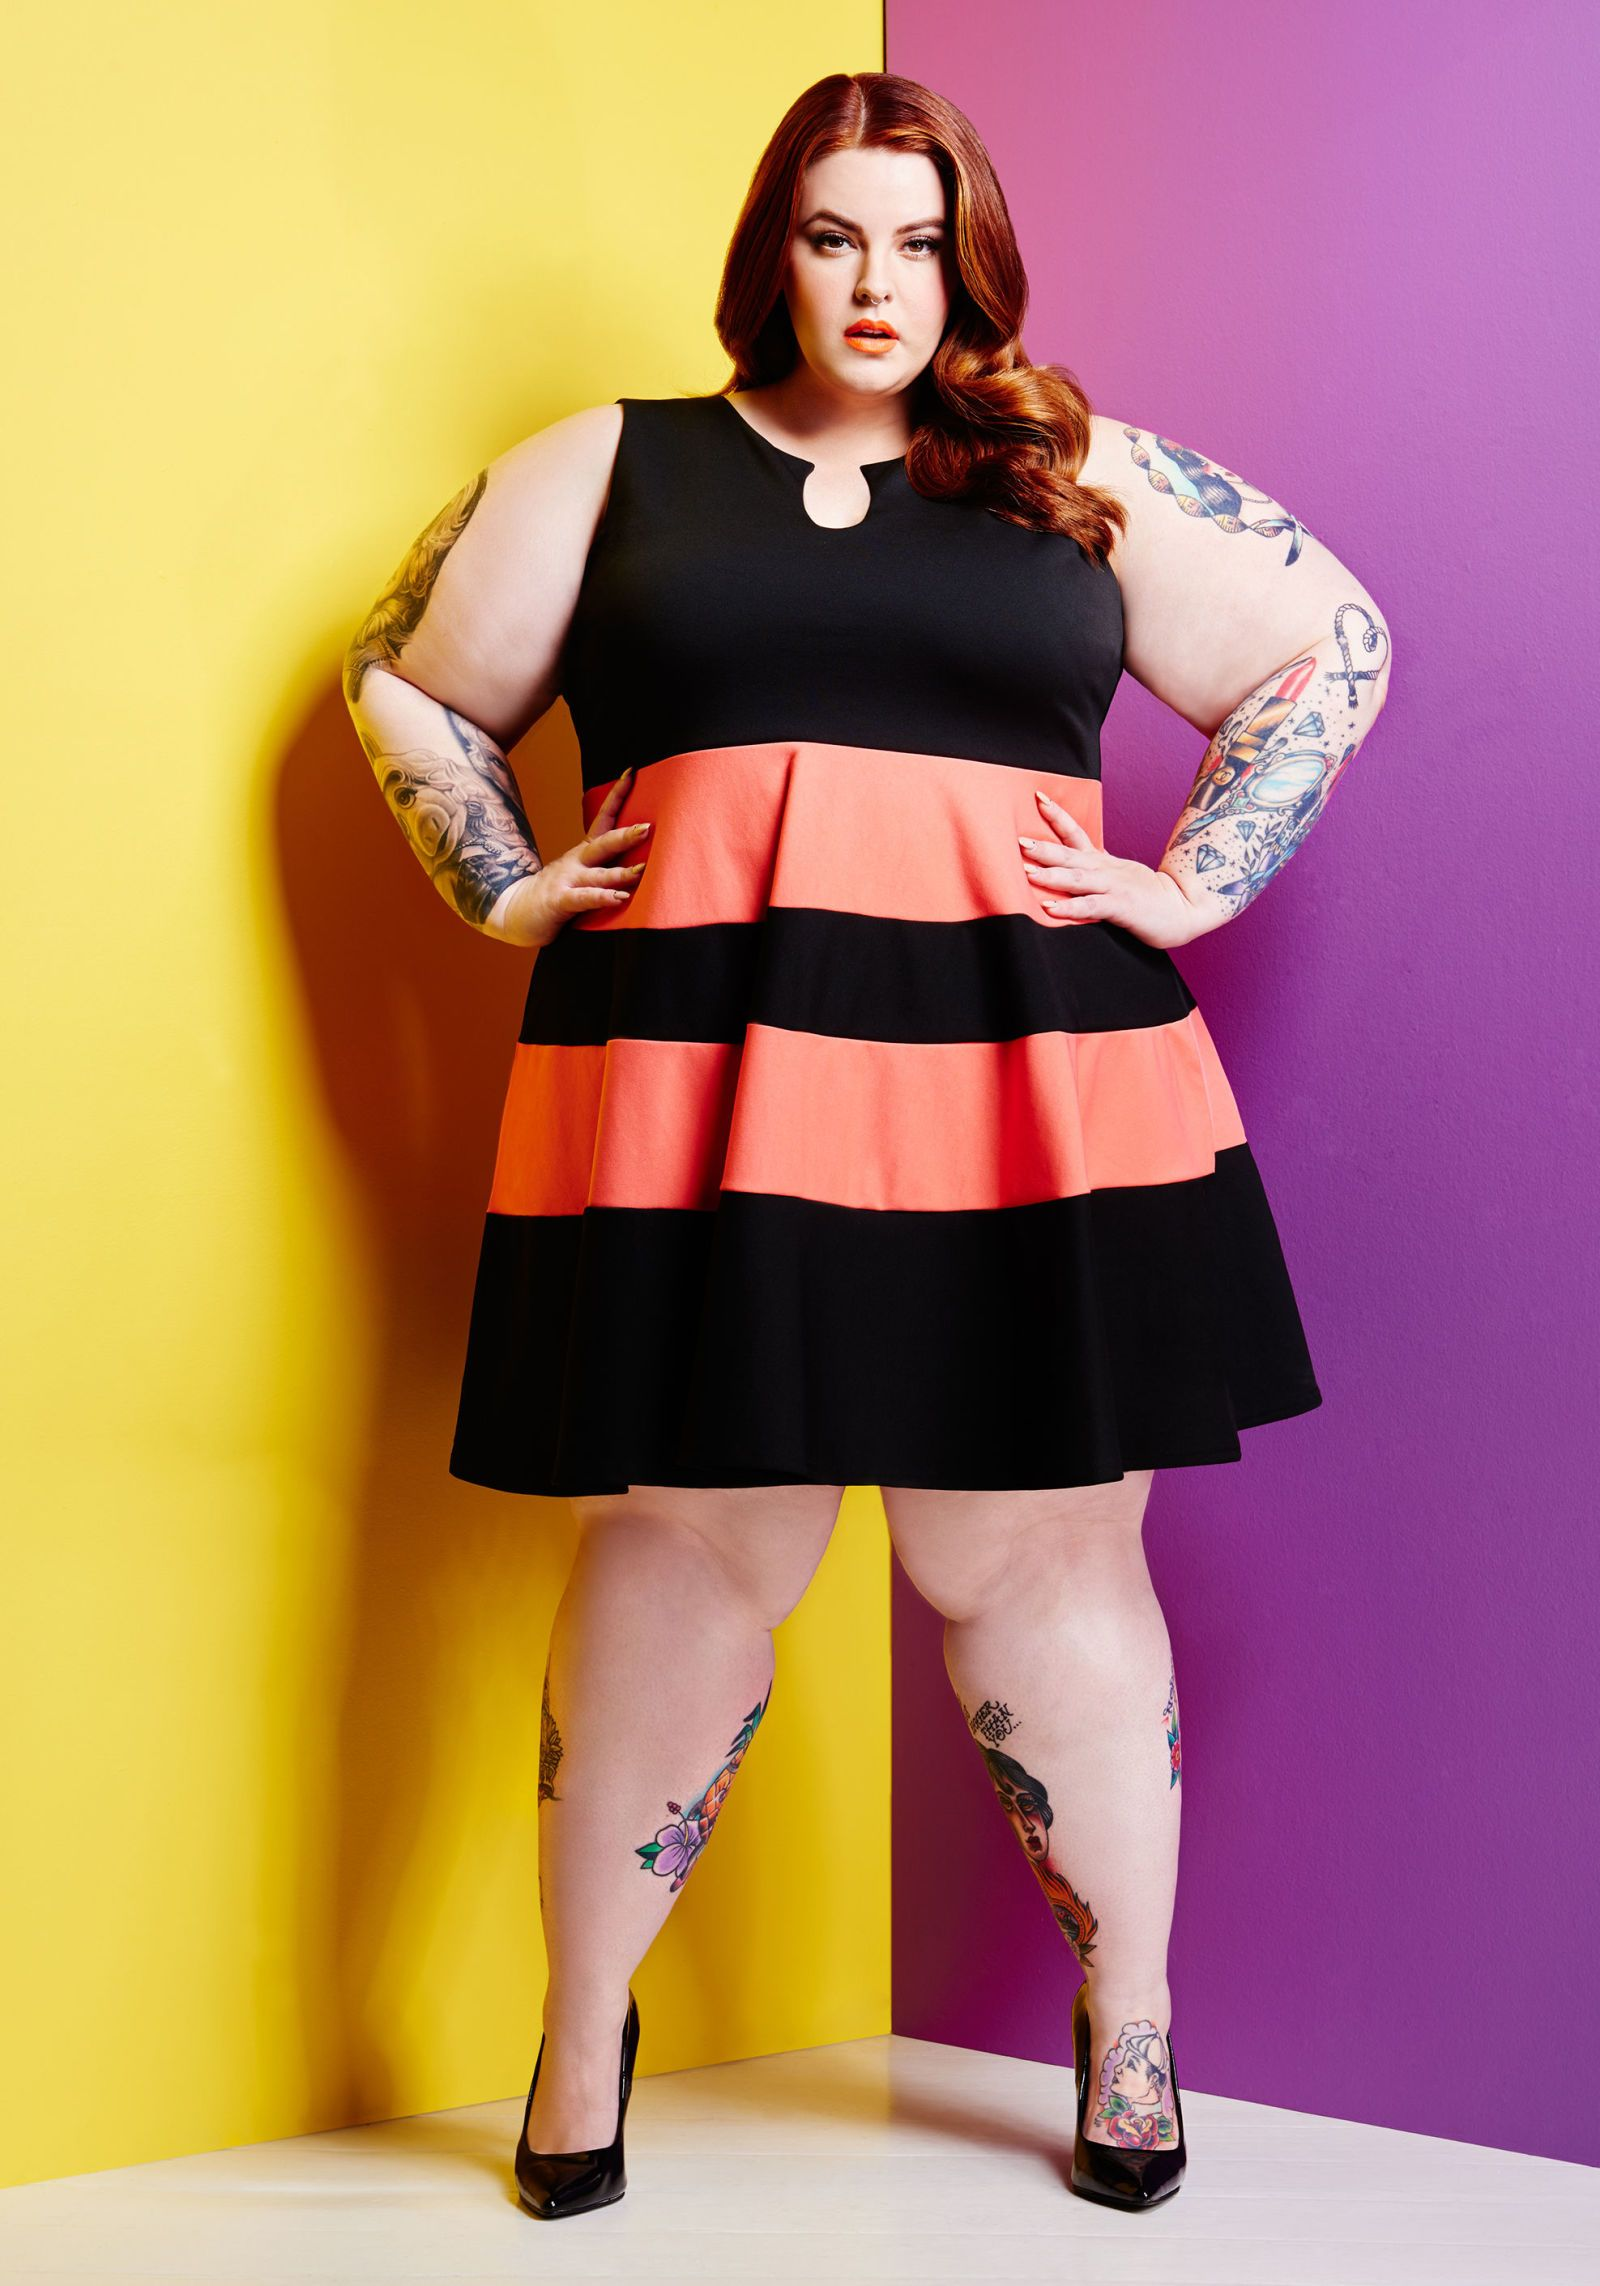 Party Outfit Für Mollige Tess Holliday Gives Us Her Summer Styling Tips For Curvier